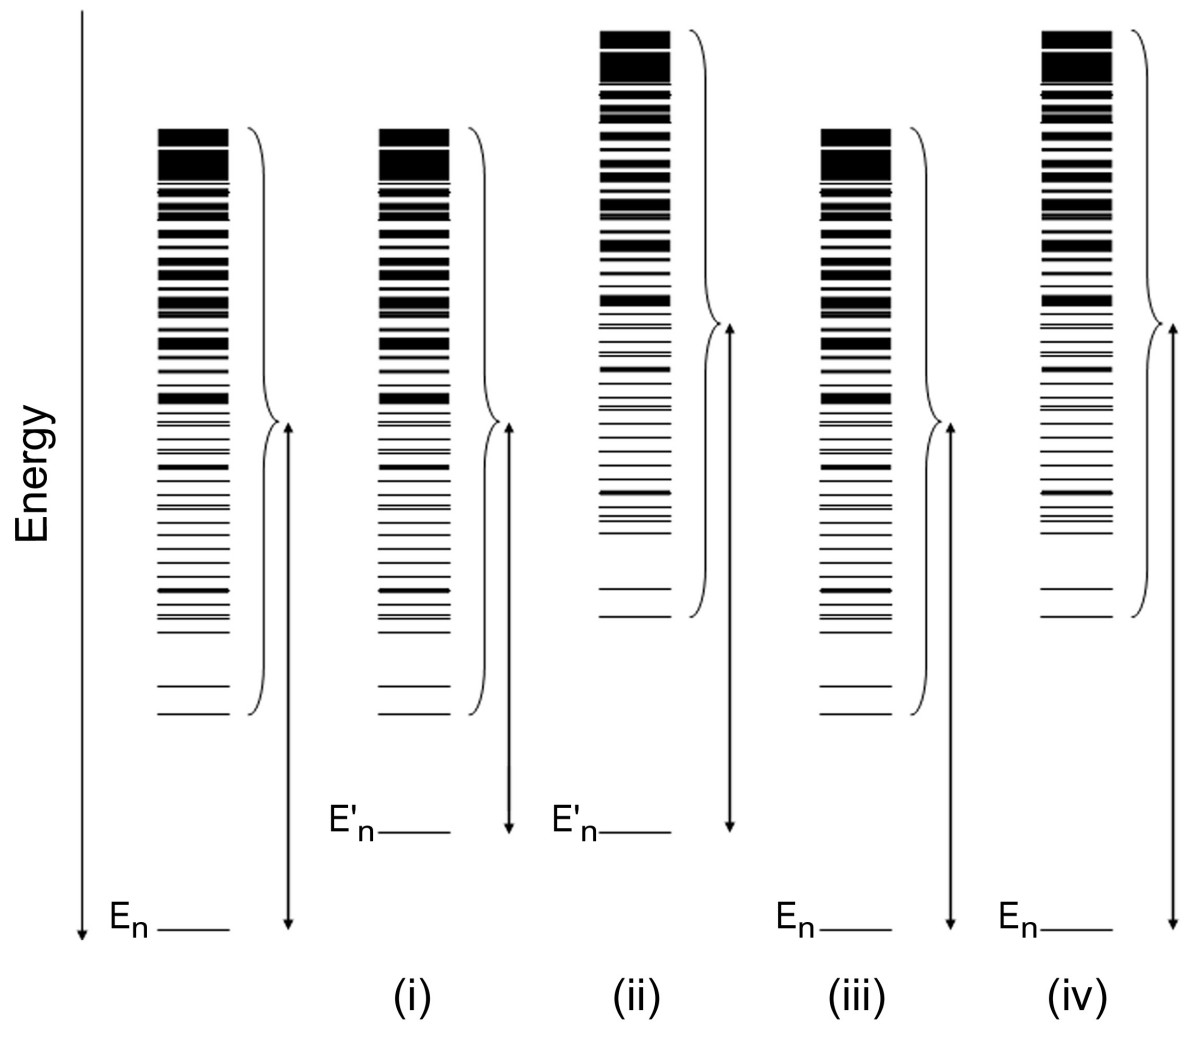 https://static-content.springer.com/image/art%3A10.1186%2F1472-6807-9-4/MediaObjects/12900_2008_Article_224_Fig4_HTML.jpg